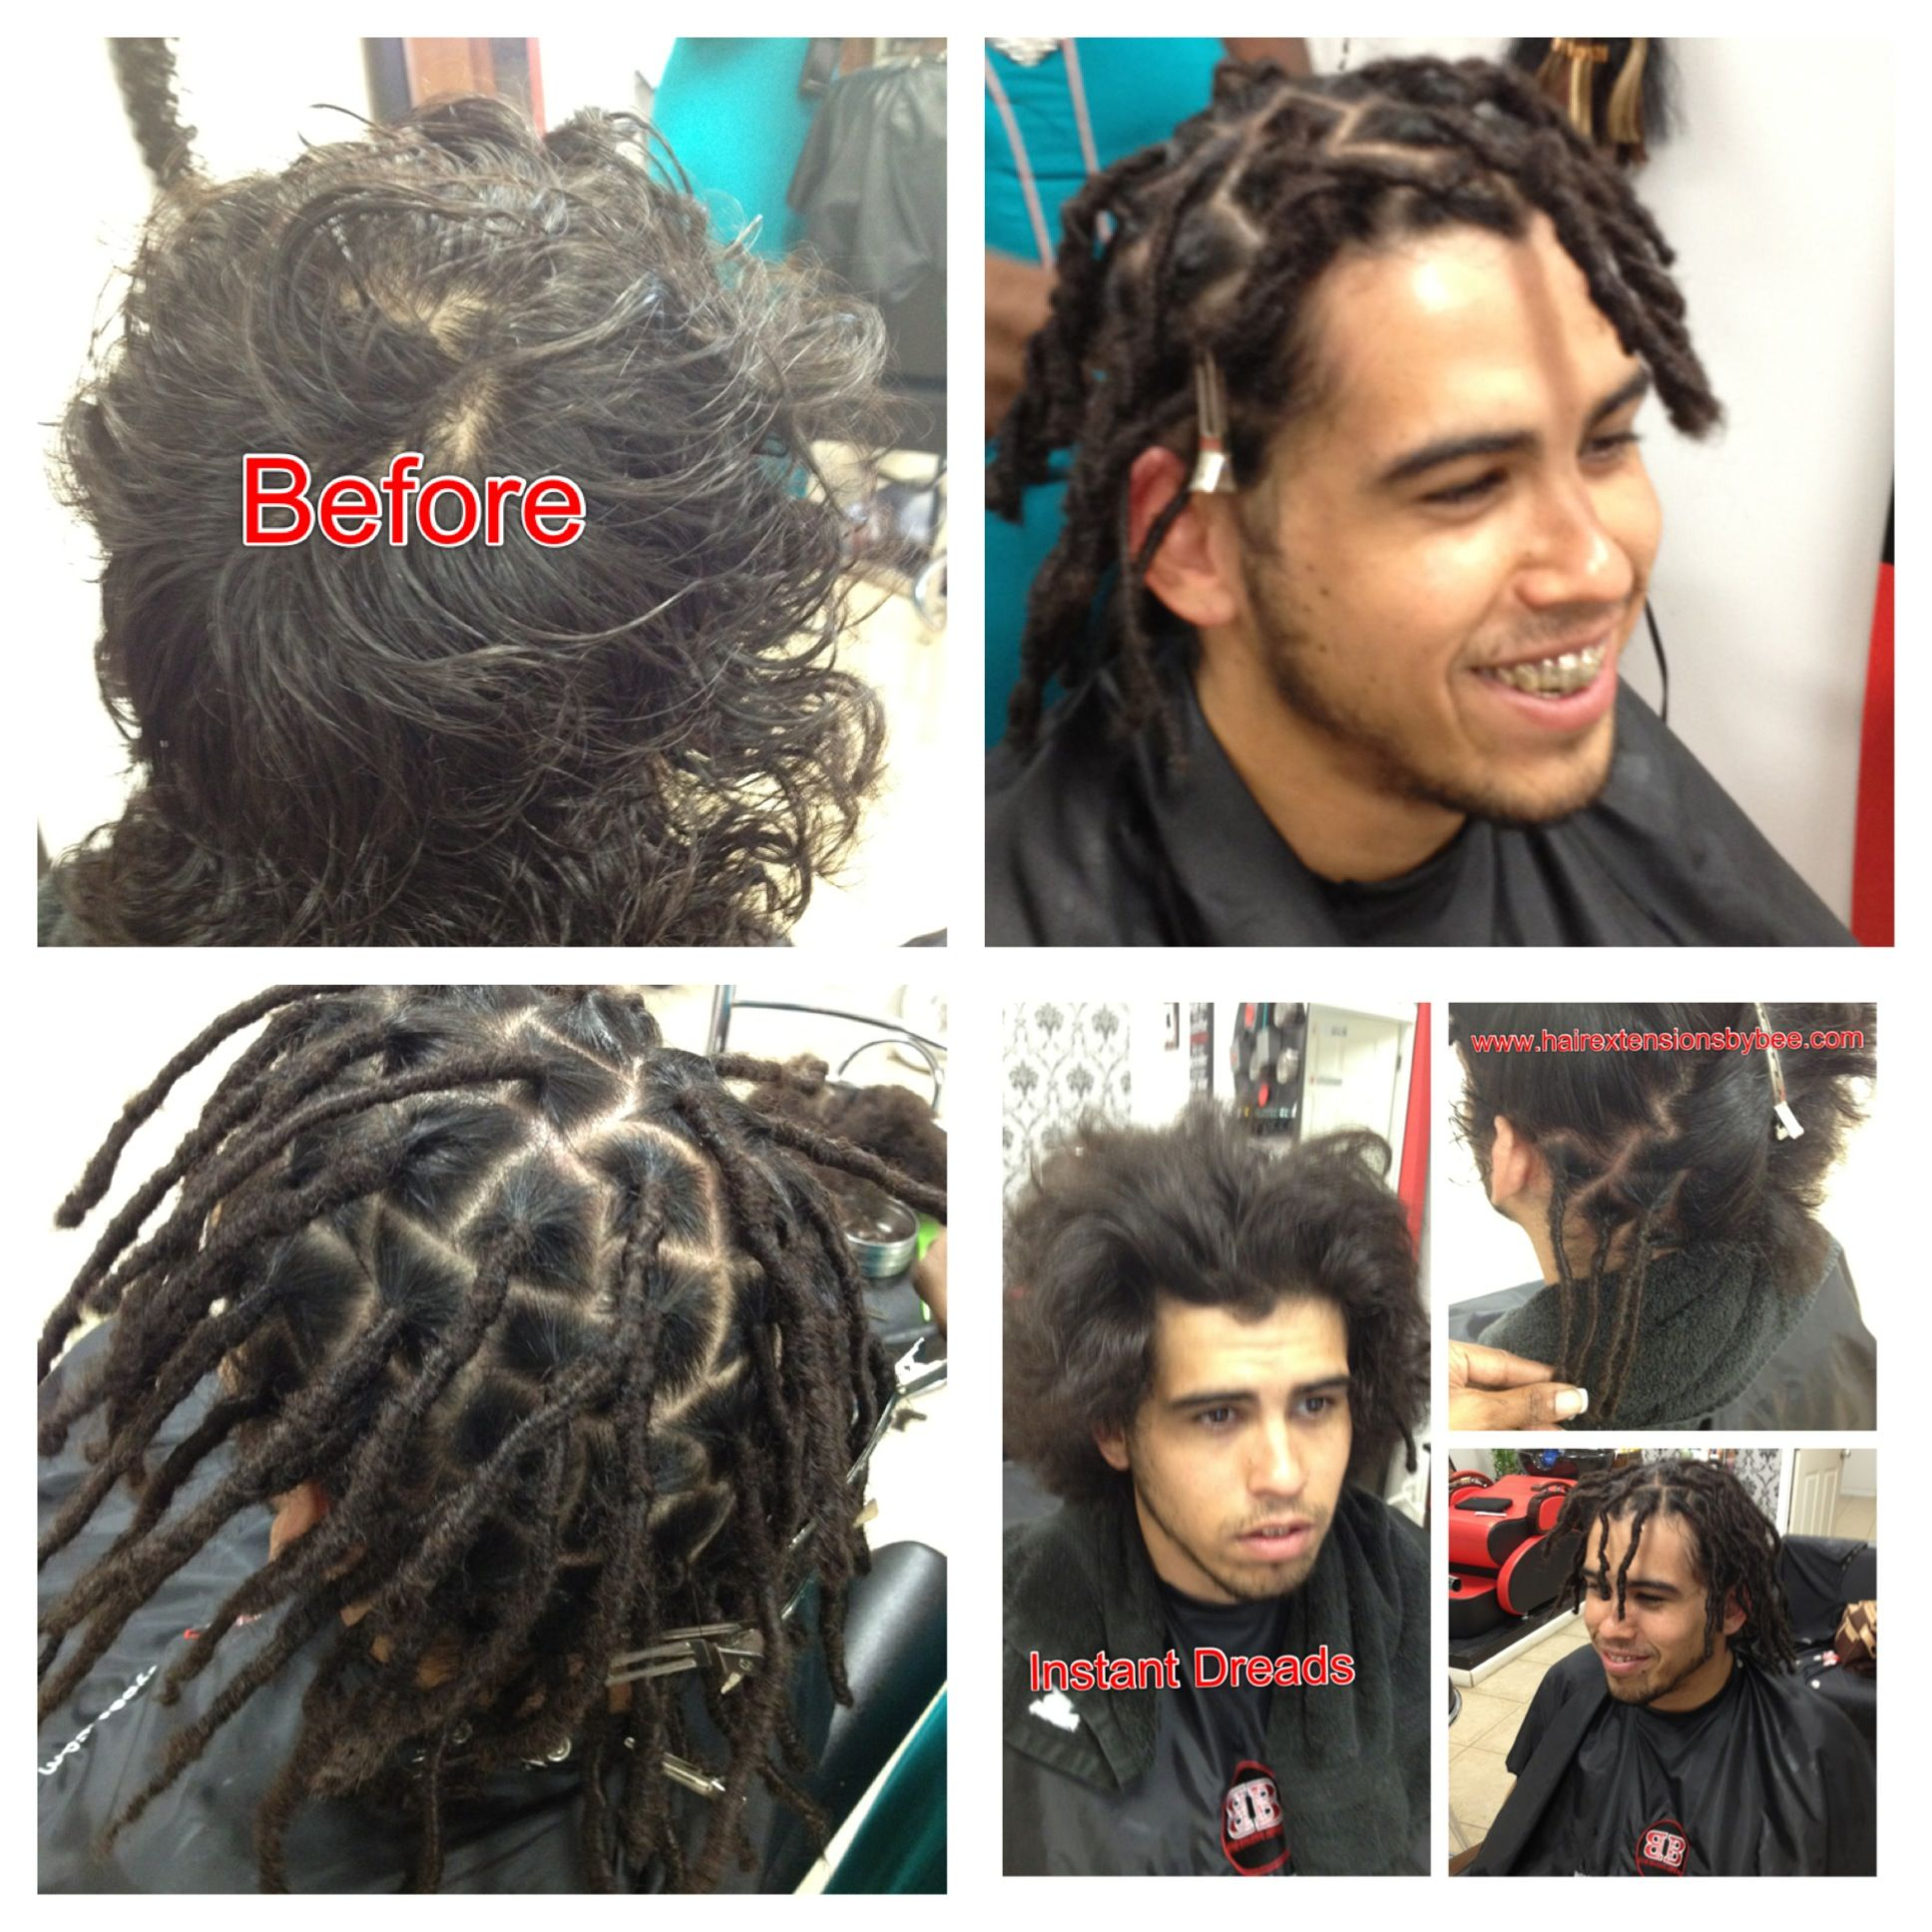 Instant Dreads Will Work With Any Texture Hair. Doesn't